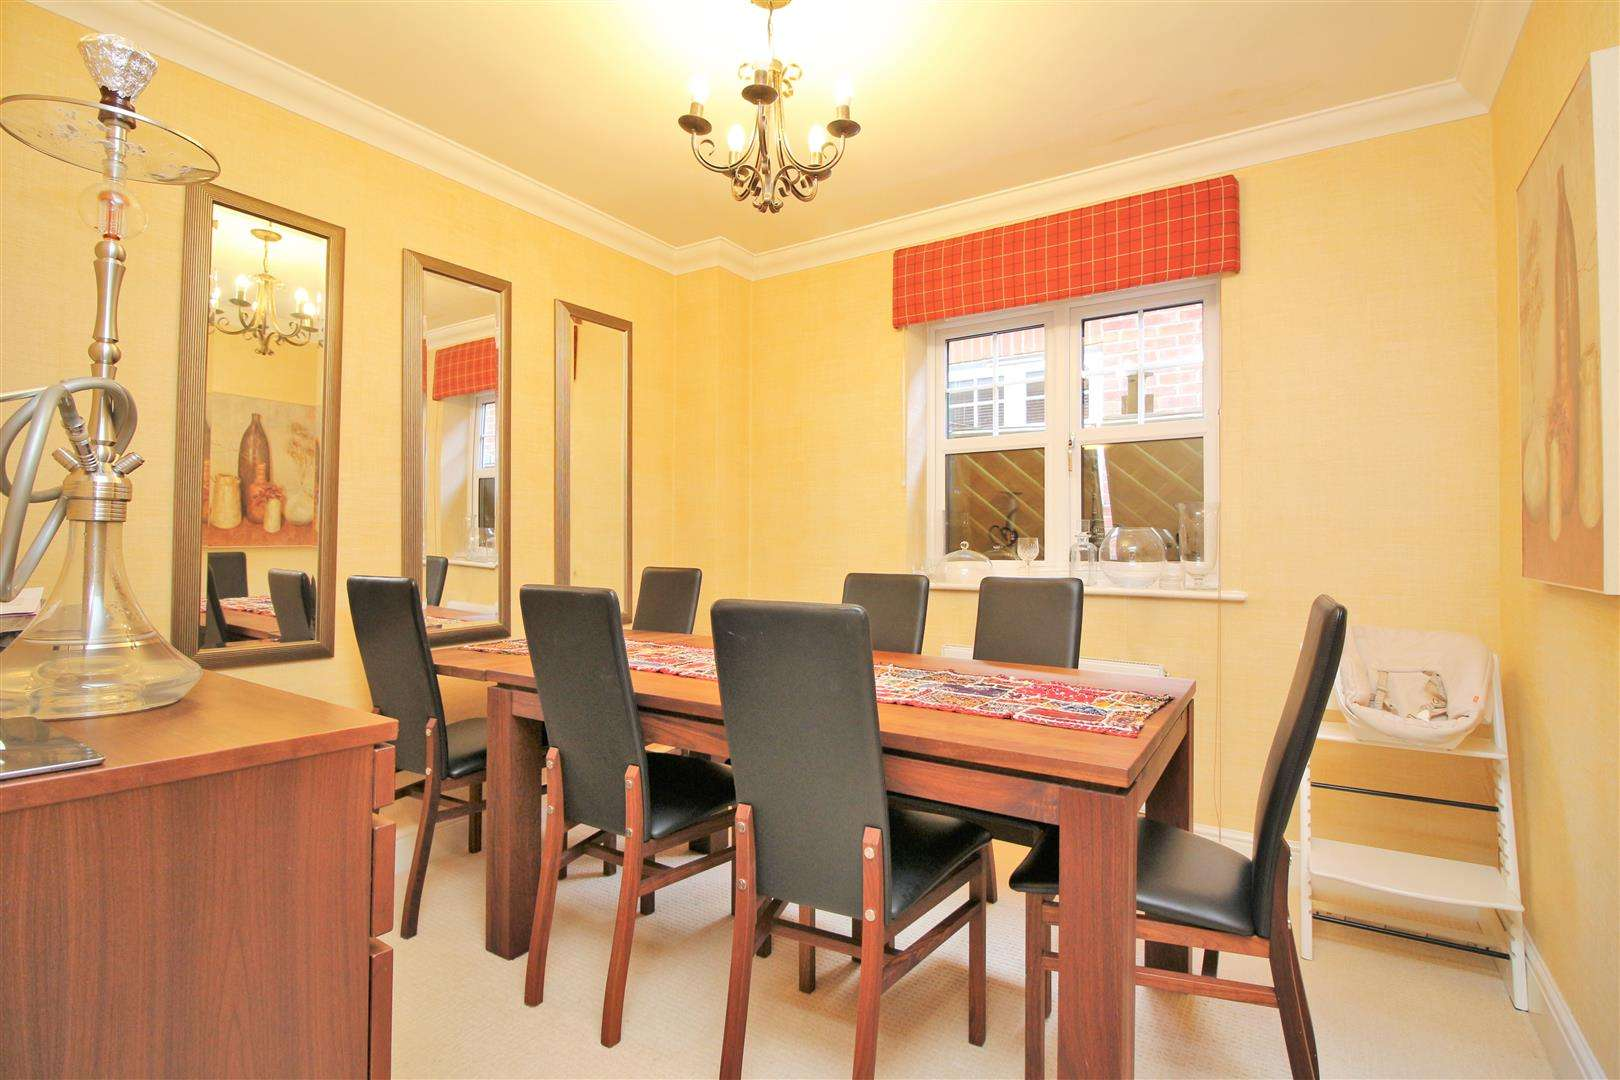 4 bed to rent in Bushey Heath - (Property Image 5)